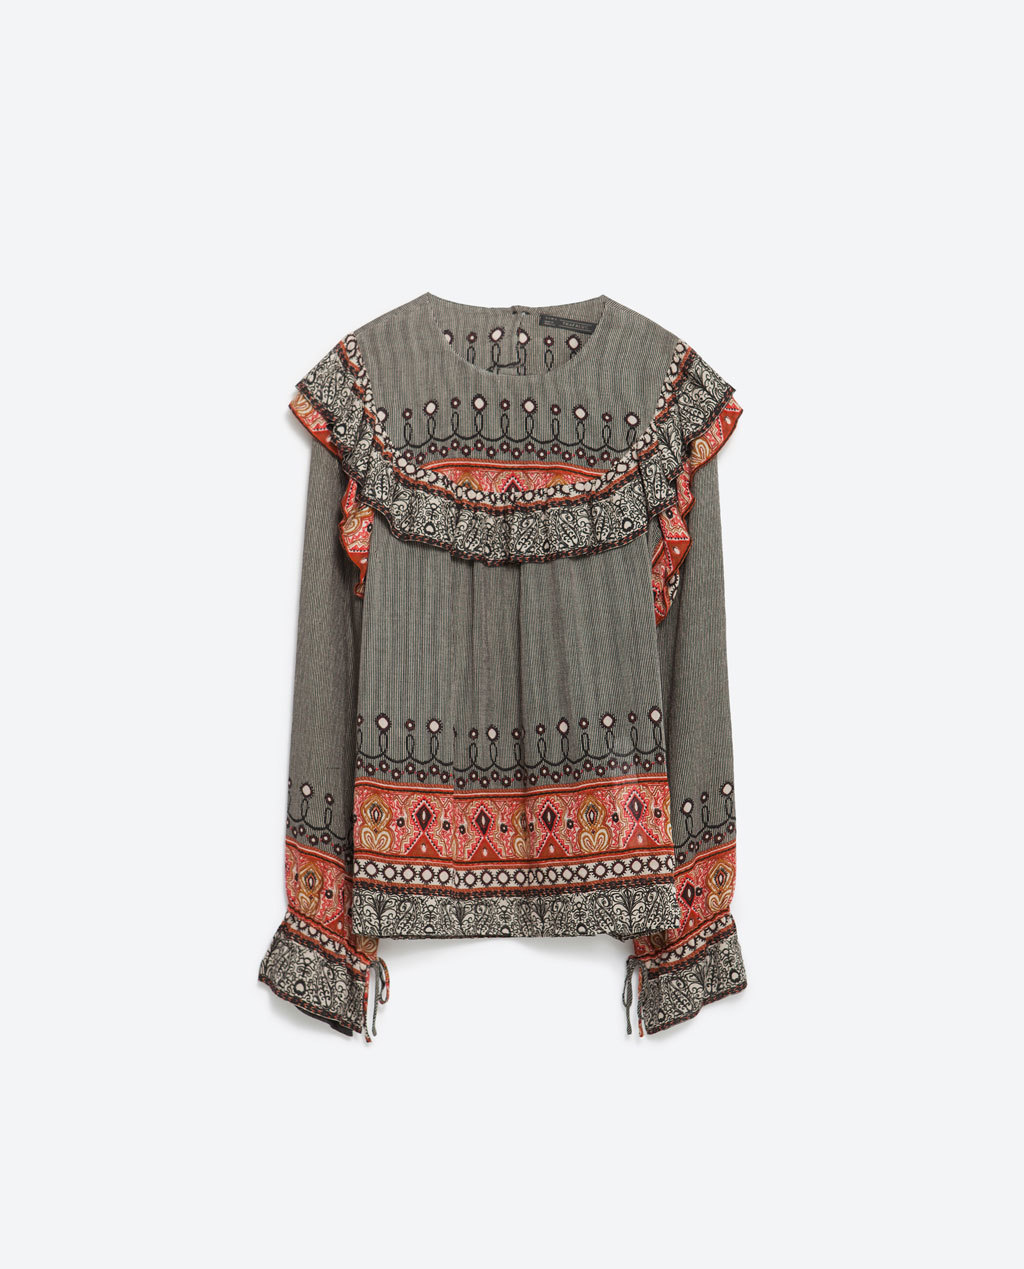 Printed Shirt - style: blouse; bust detail: ruching/gathering/draping/layers/pintuck pleats at bust; secondary colour: coral; predominant colour: light grey; occasions: casual; length: standard; fit: body skimming; neckline: crew; sleeve length: long sleeve; sleeve style: standard; pattern type: fabric; pattern size: standard; pattern: patterned/print; texture group: other - light to midweight; embellishment: embroidered; fibres: viscose/rayon - mix; multicoloured: multicoloured; season: a/w 2015